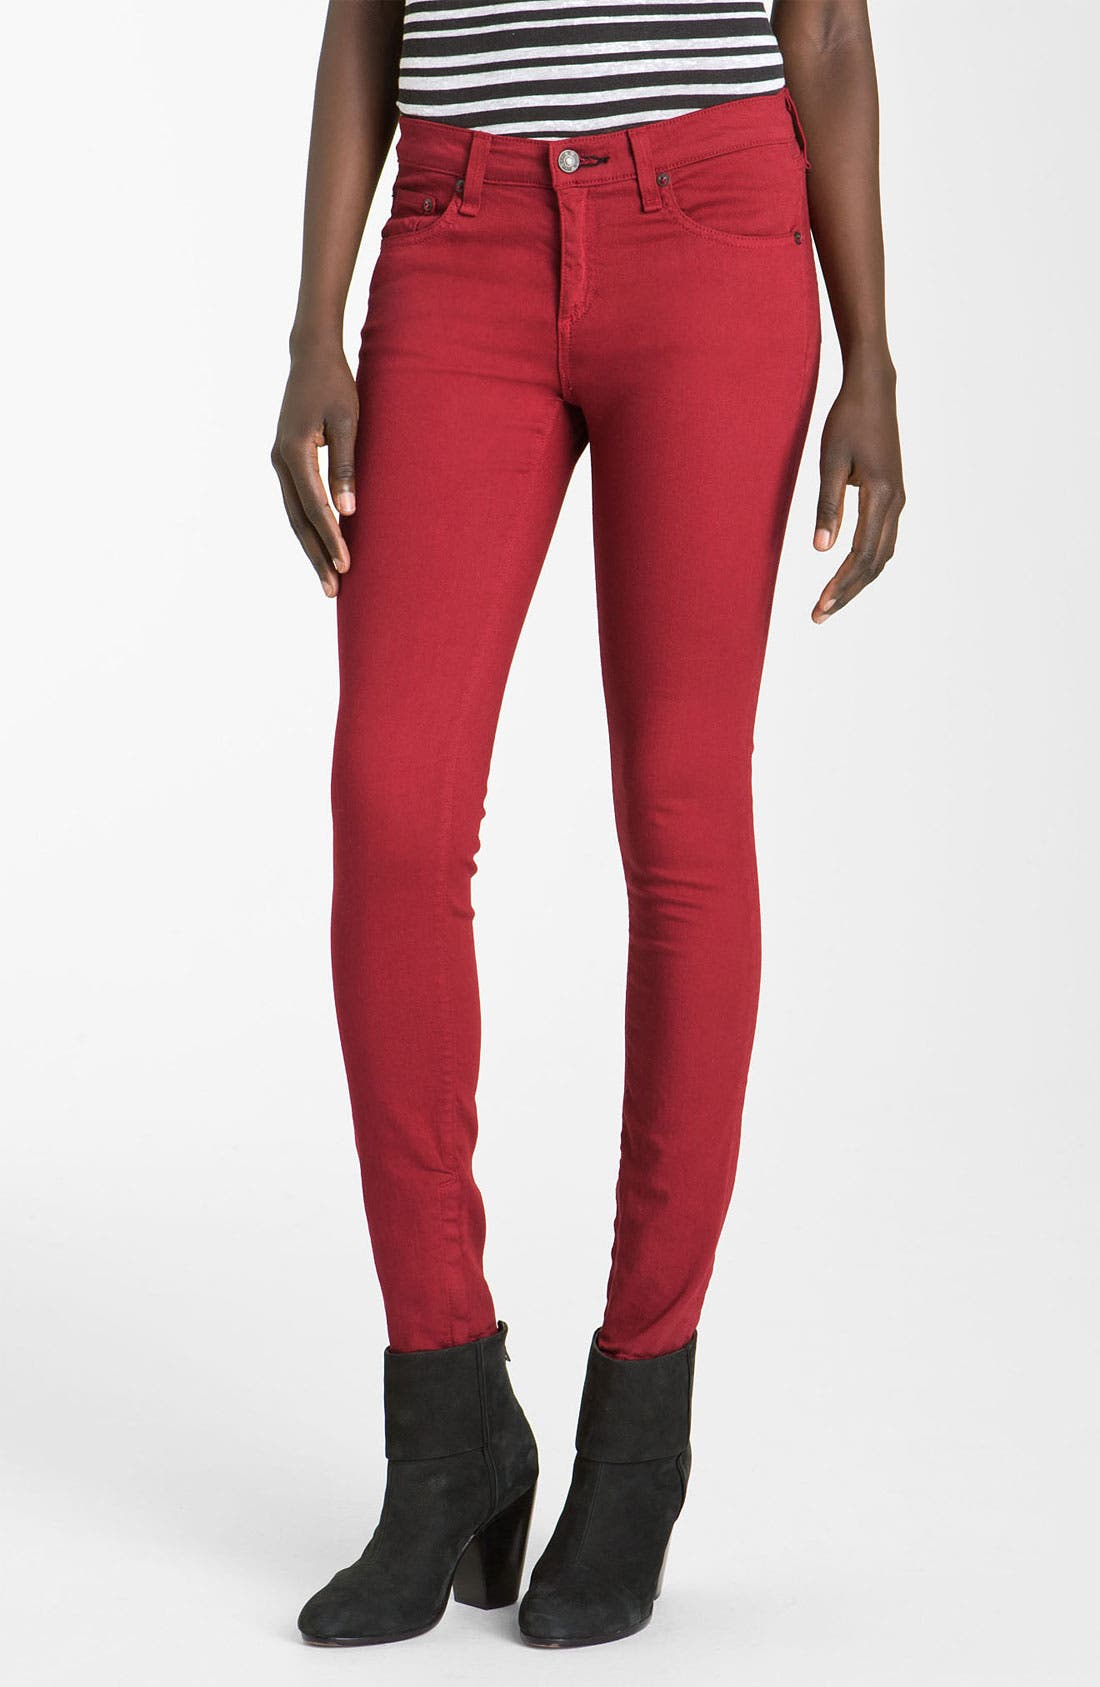 RAG & BONE, JEAN Skinny Zip Detail Stretch Jeans, Main thumbnail 1, color, 600